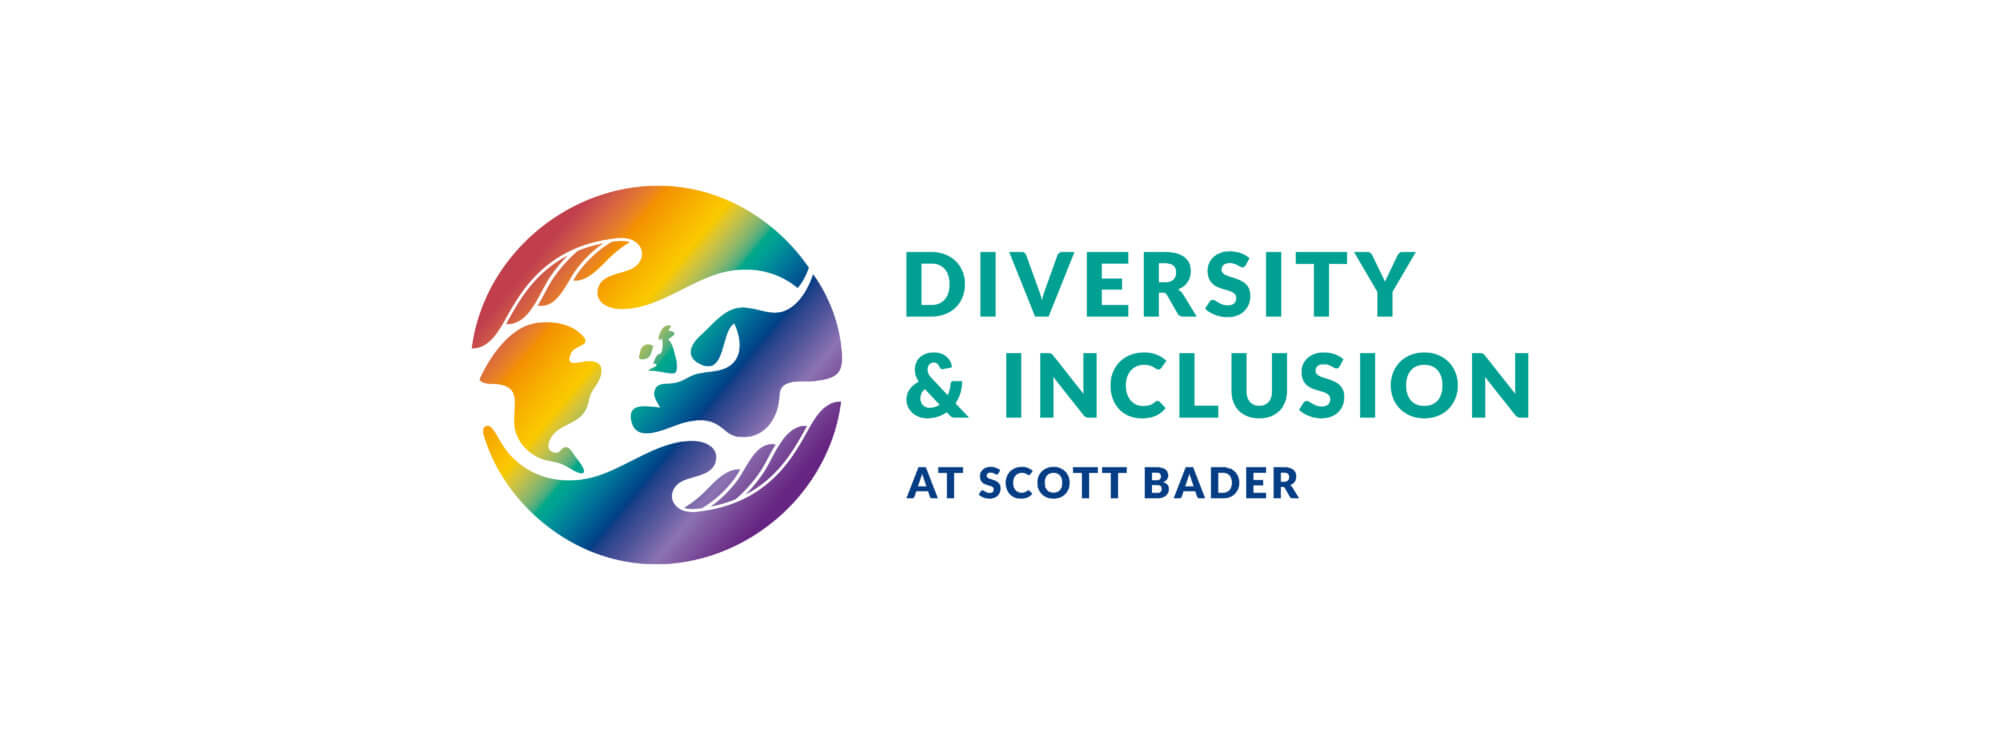 Scott Bader embraces Diversity & Inclusion